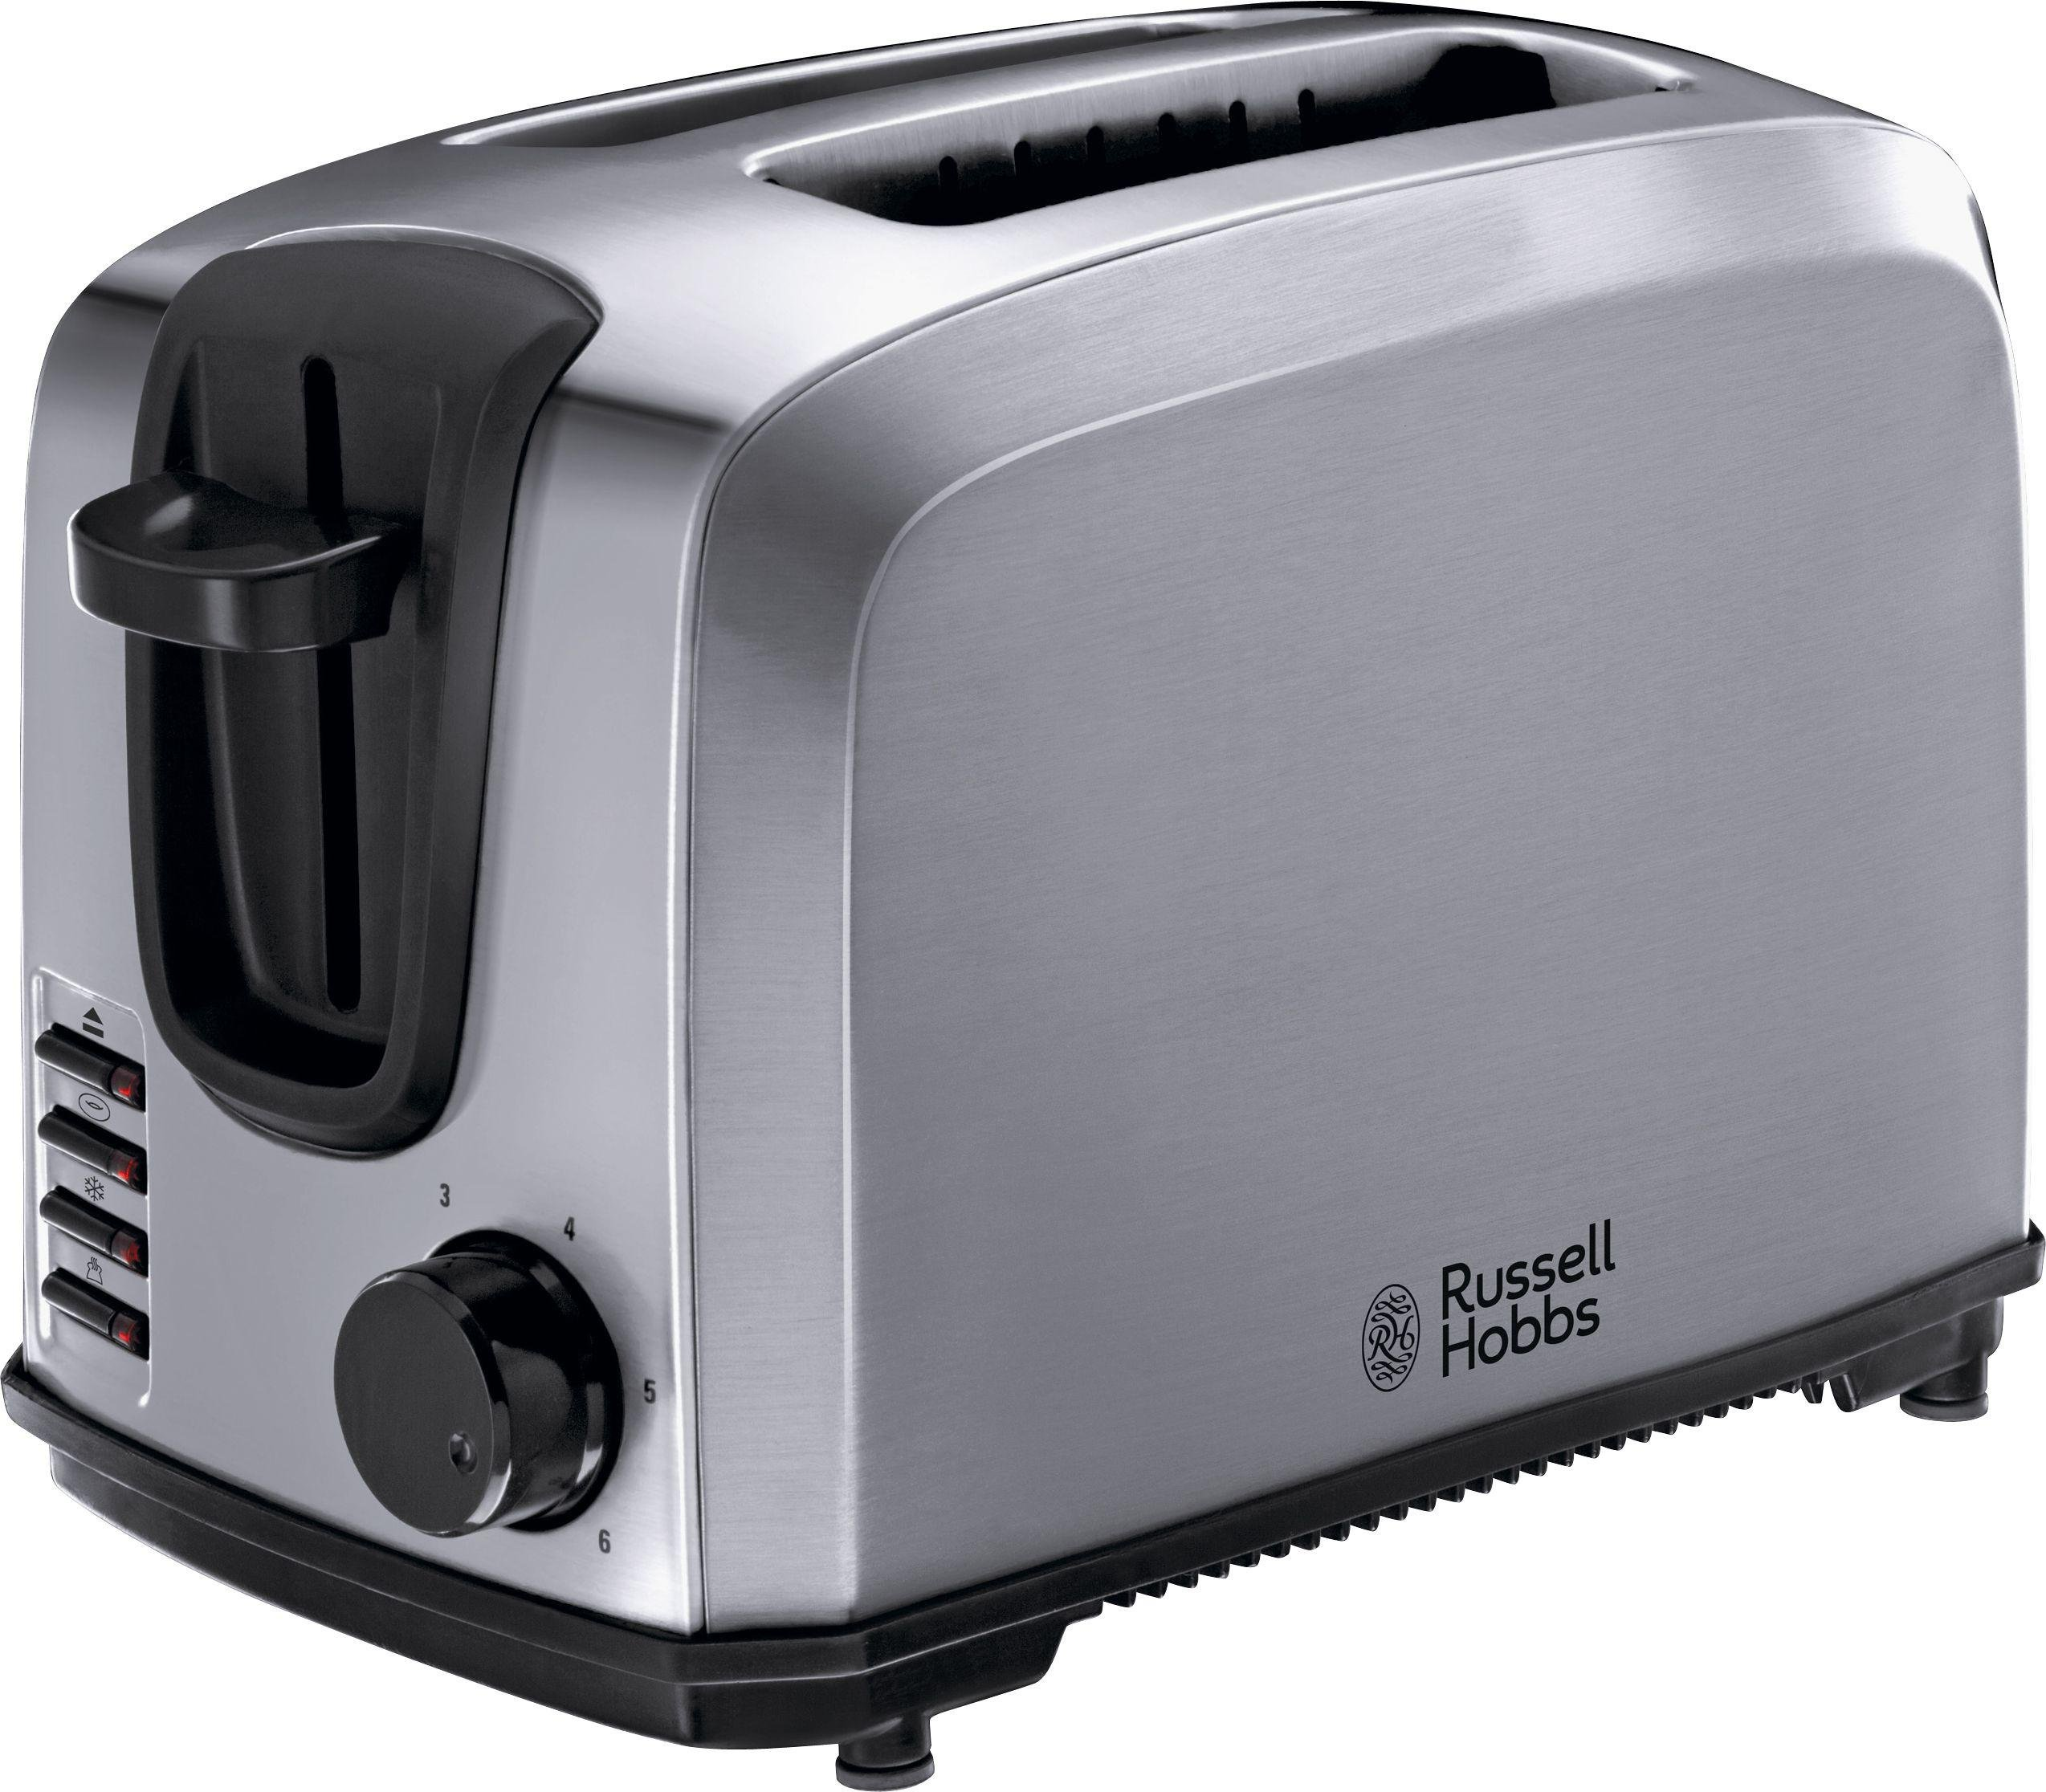 18 russell hobbs toaster 20880 compact 2 slice stainless steel compare electronics. Black Bedroom Furniture Sets. Home Design Ideas